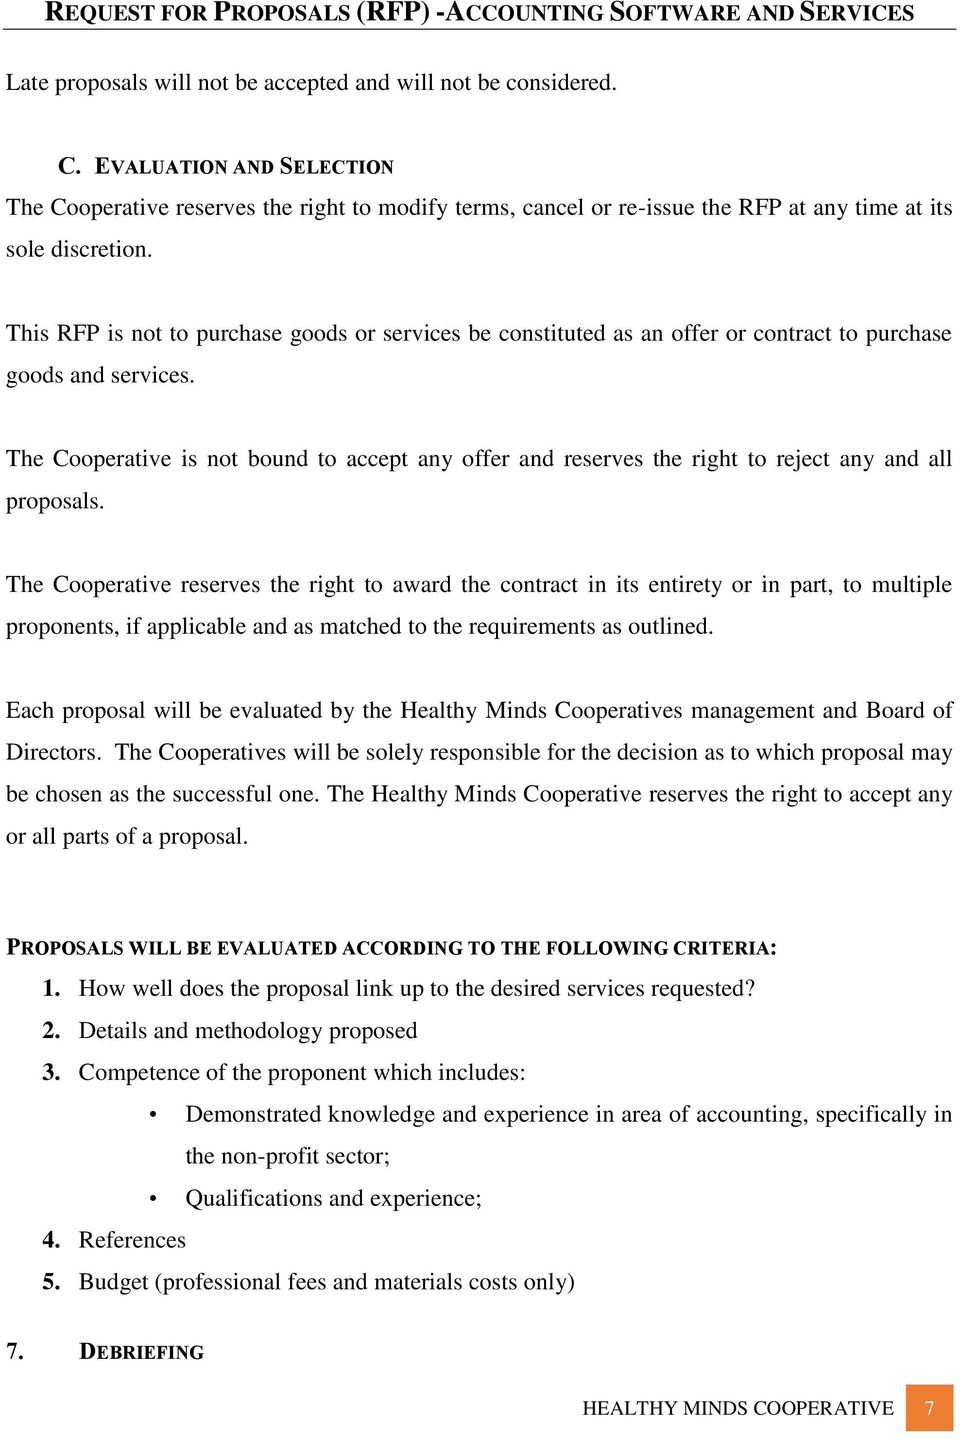 This RFP is not to purchase goods or services be constituted as an offer or contract to purchase goods and services.